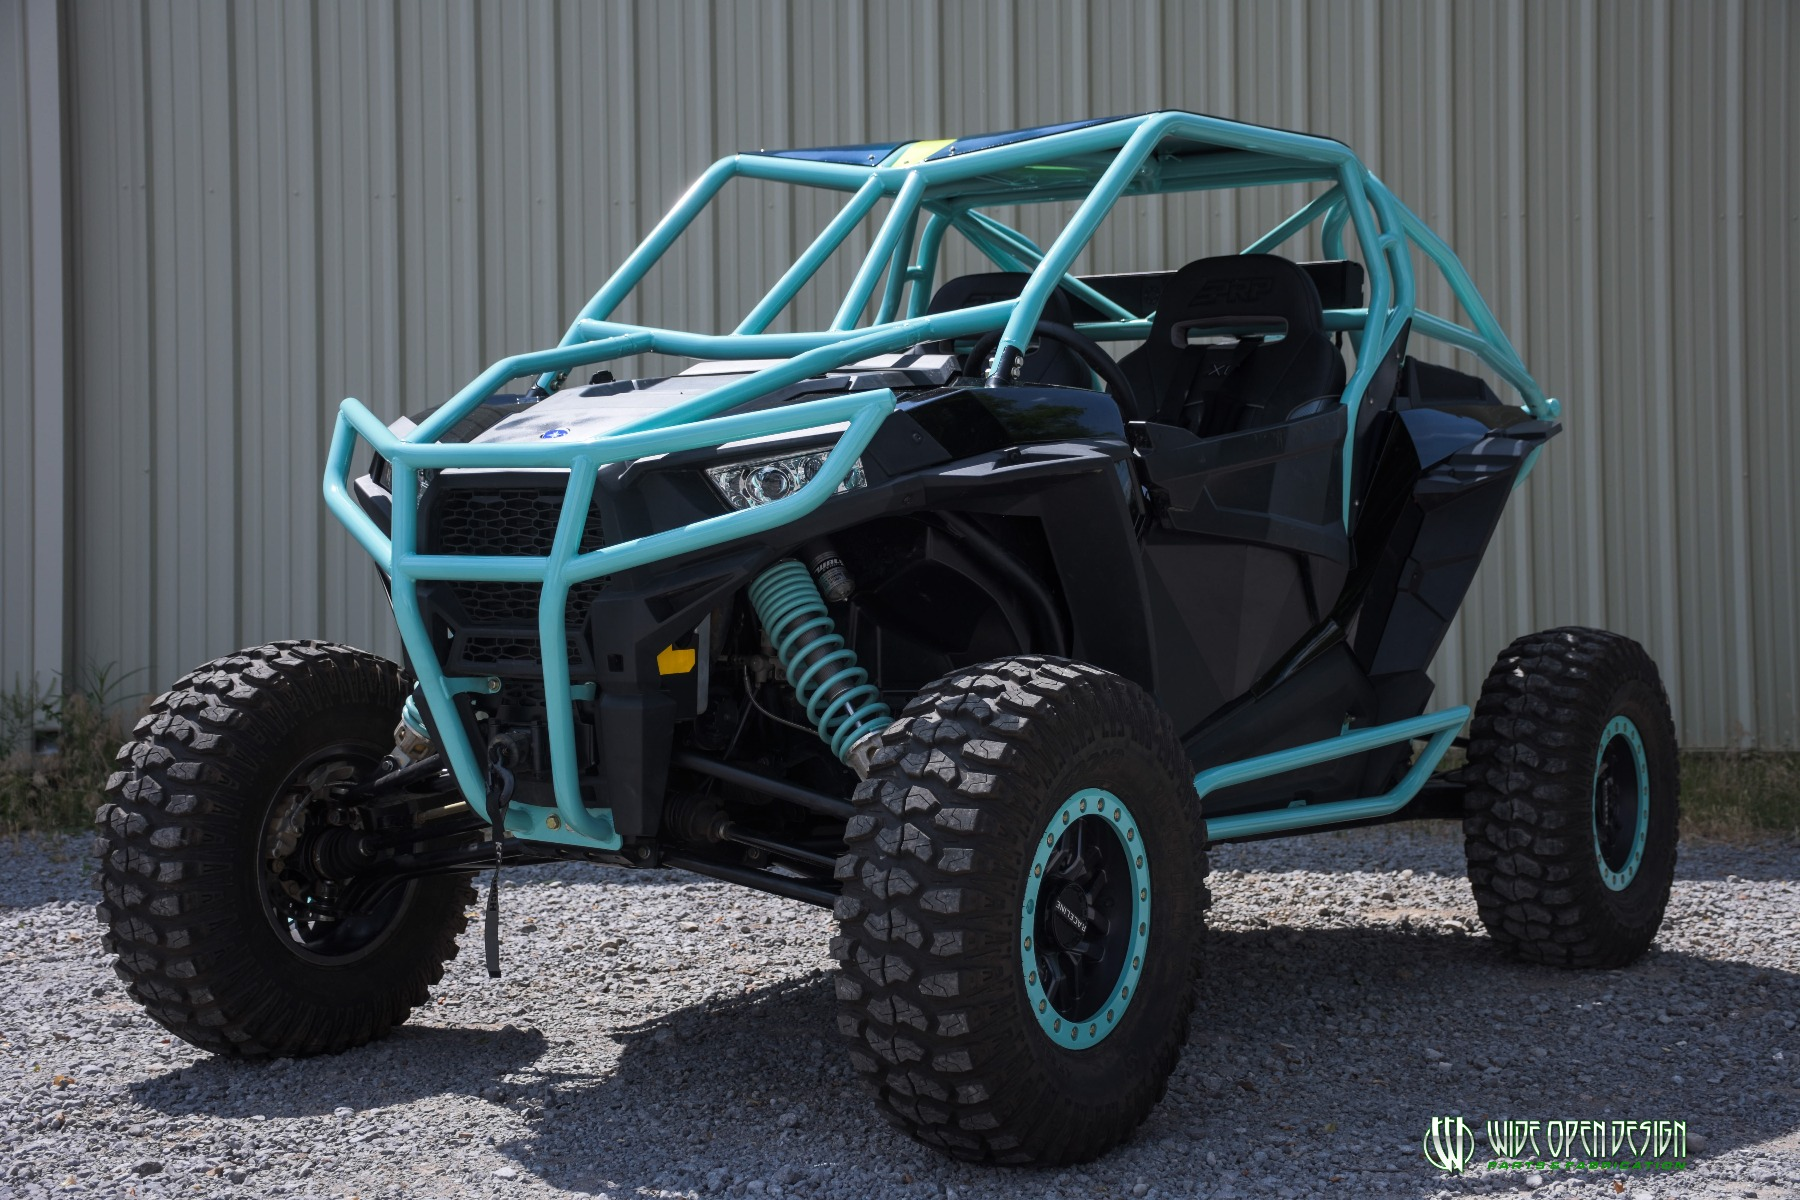 Wide Open Design UTV Cage RZR Cage Double Down featuring Double Pillars 30